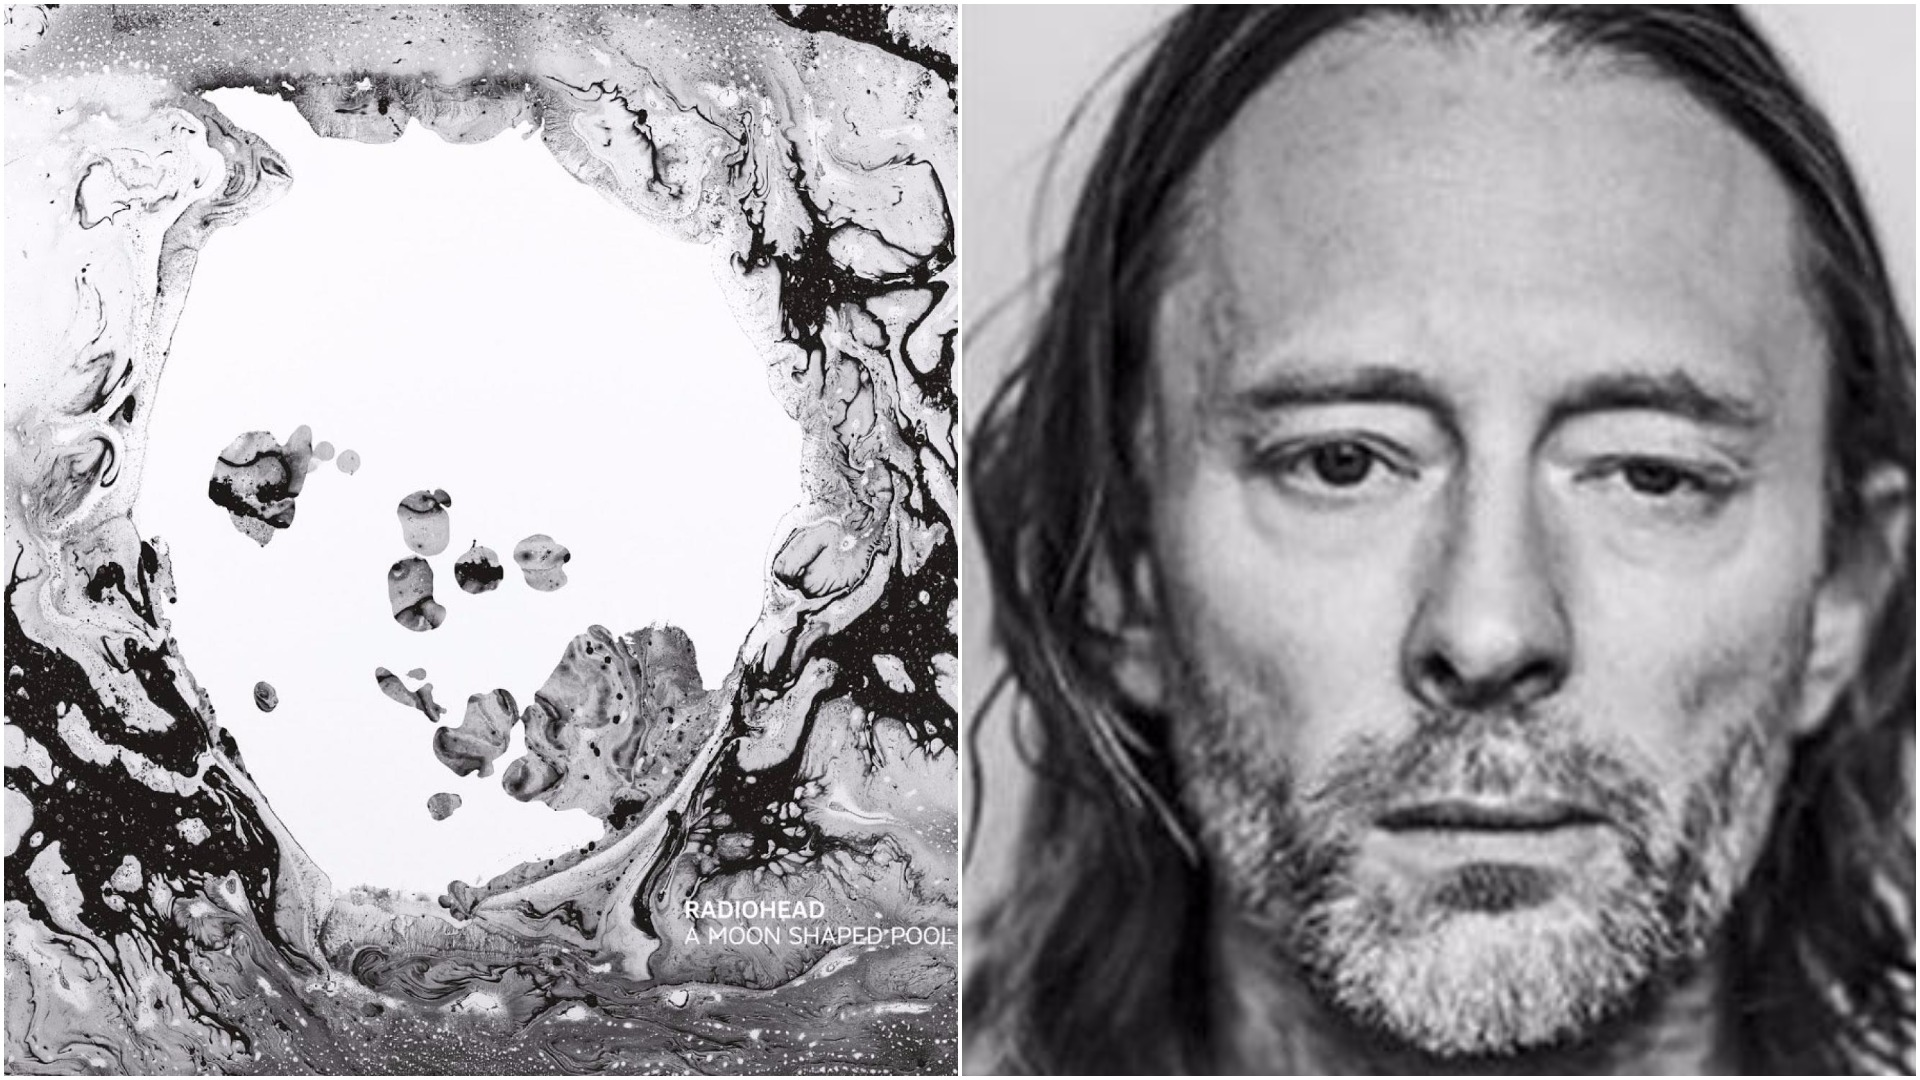 Fans can't decide if Radiohead's new album is 'boring overhyped pap' or the 'album of the decade'